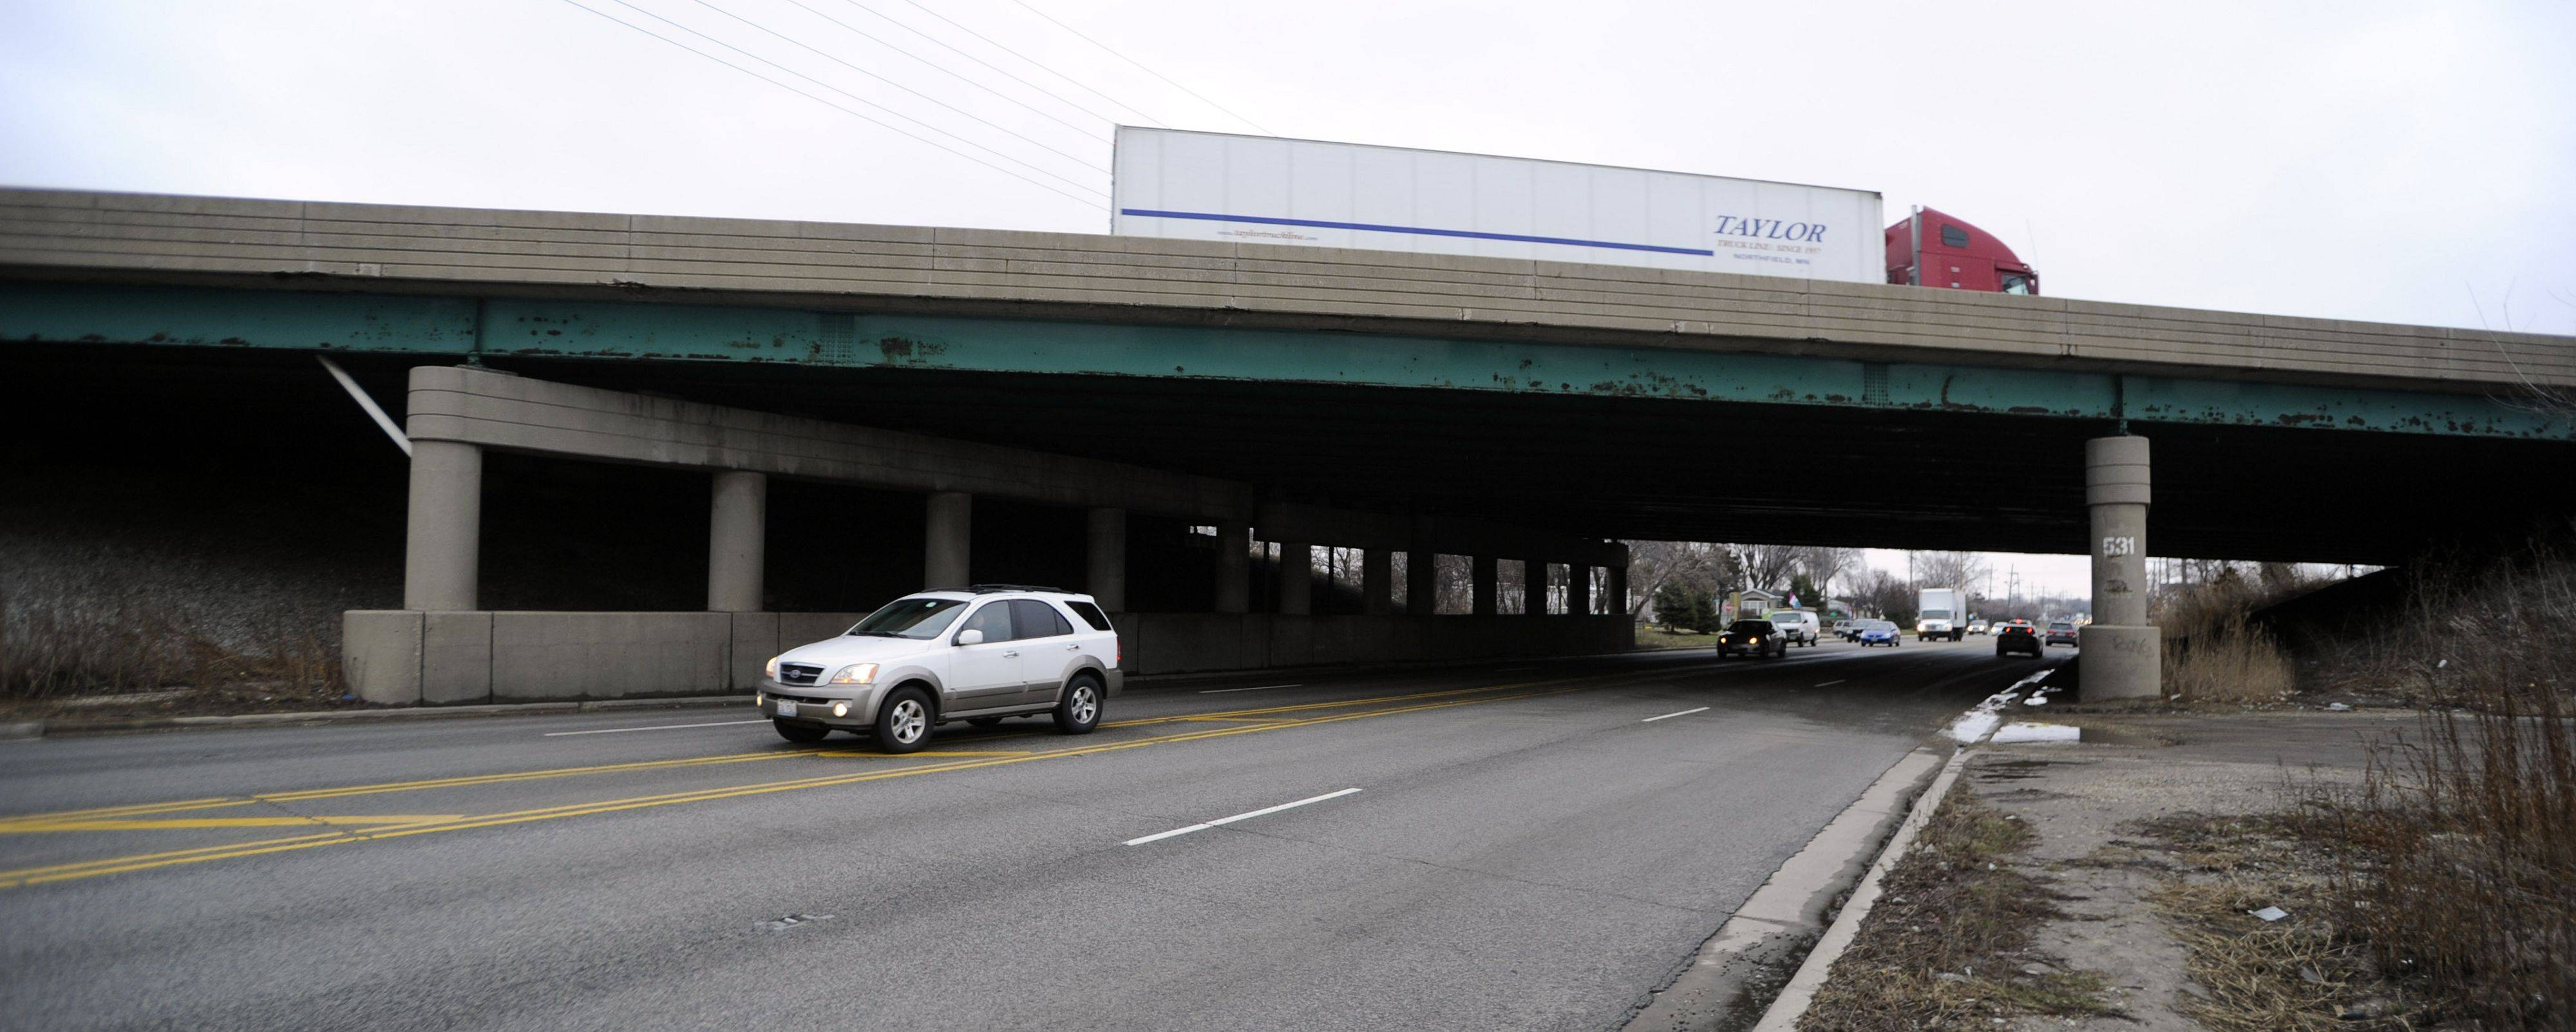 Suburban bridges with defects need cash, report says